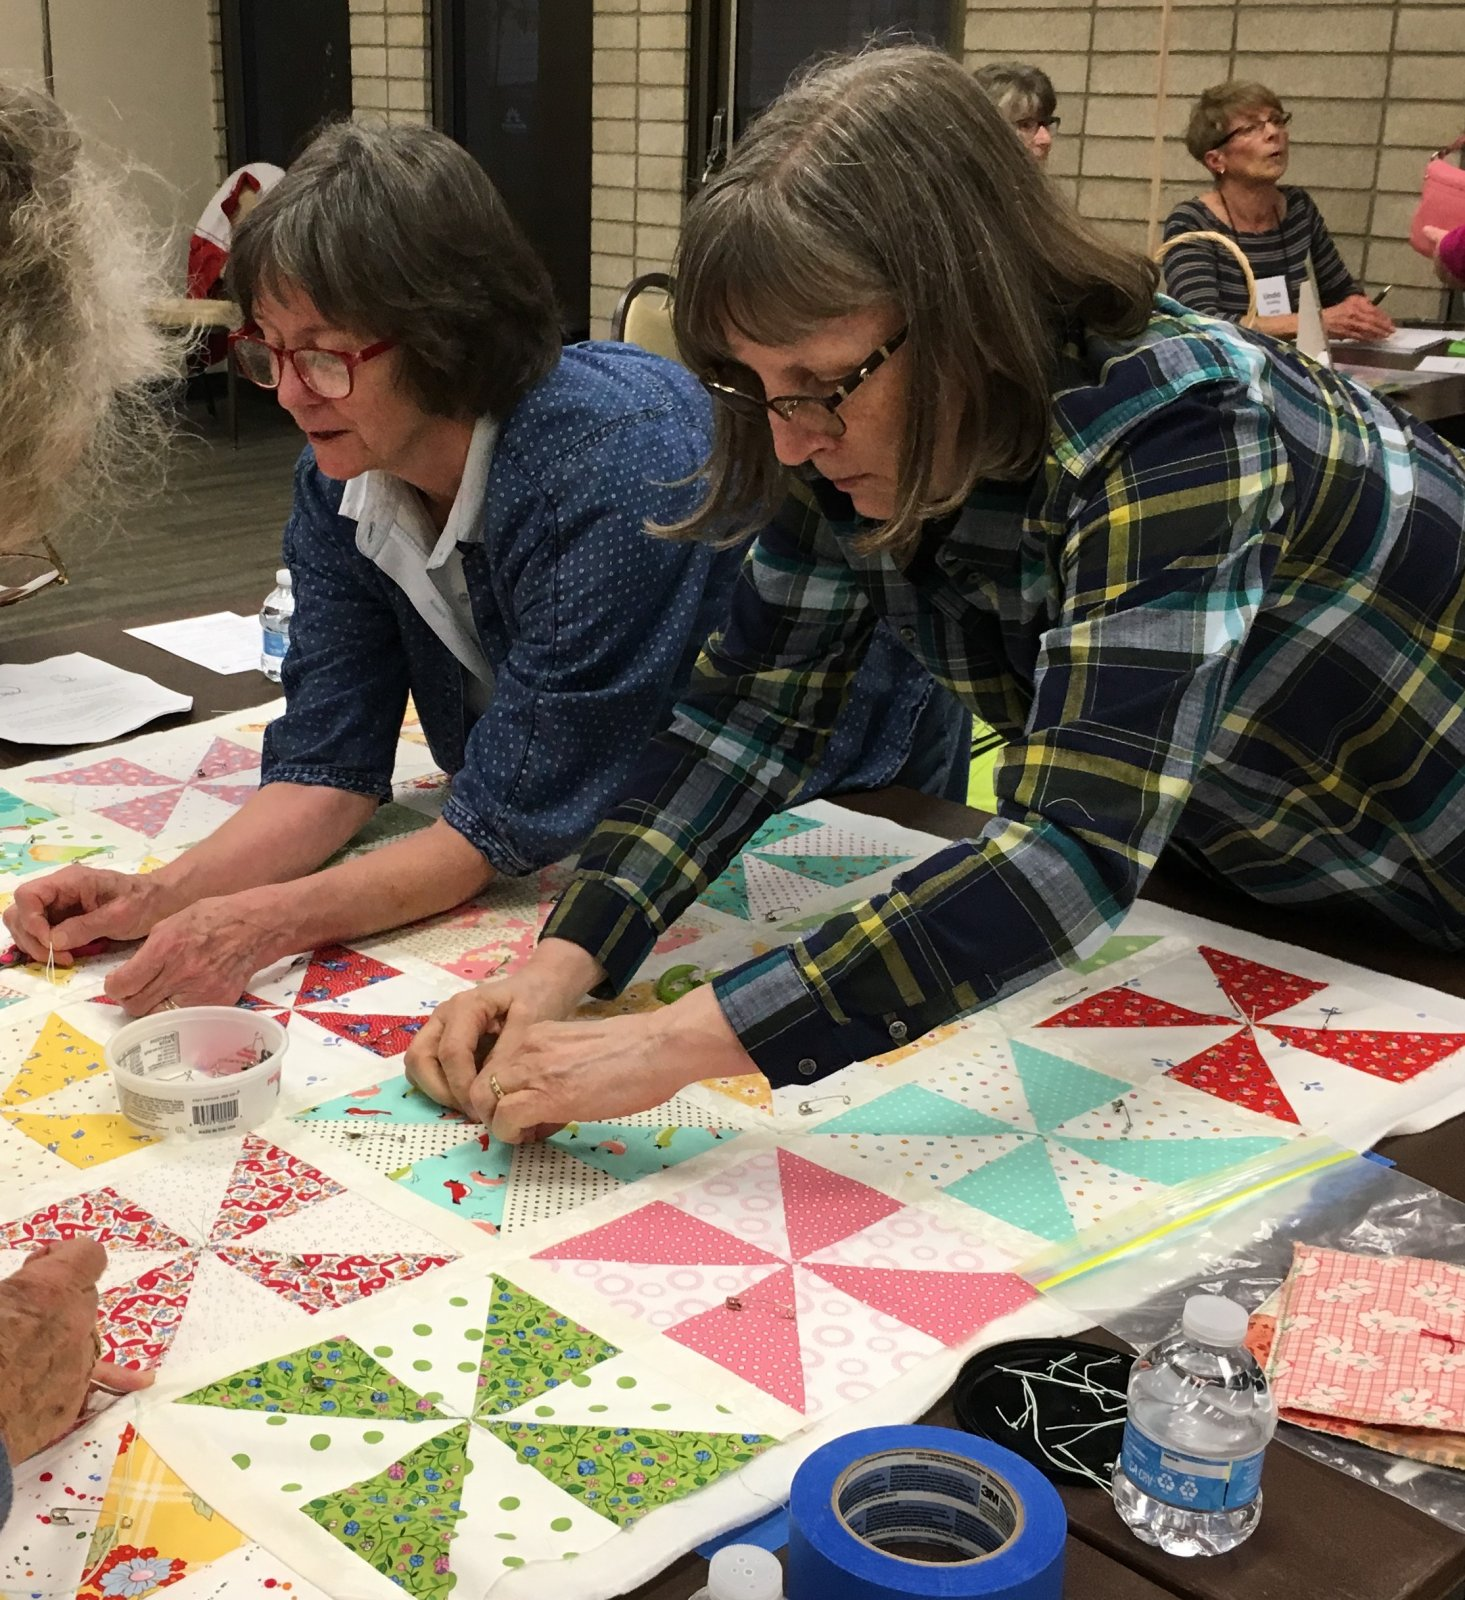 quilt tying event